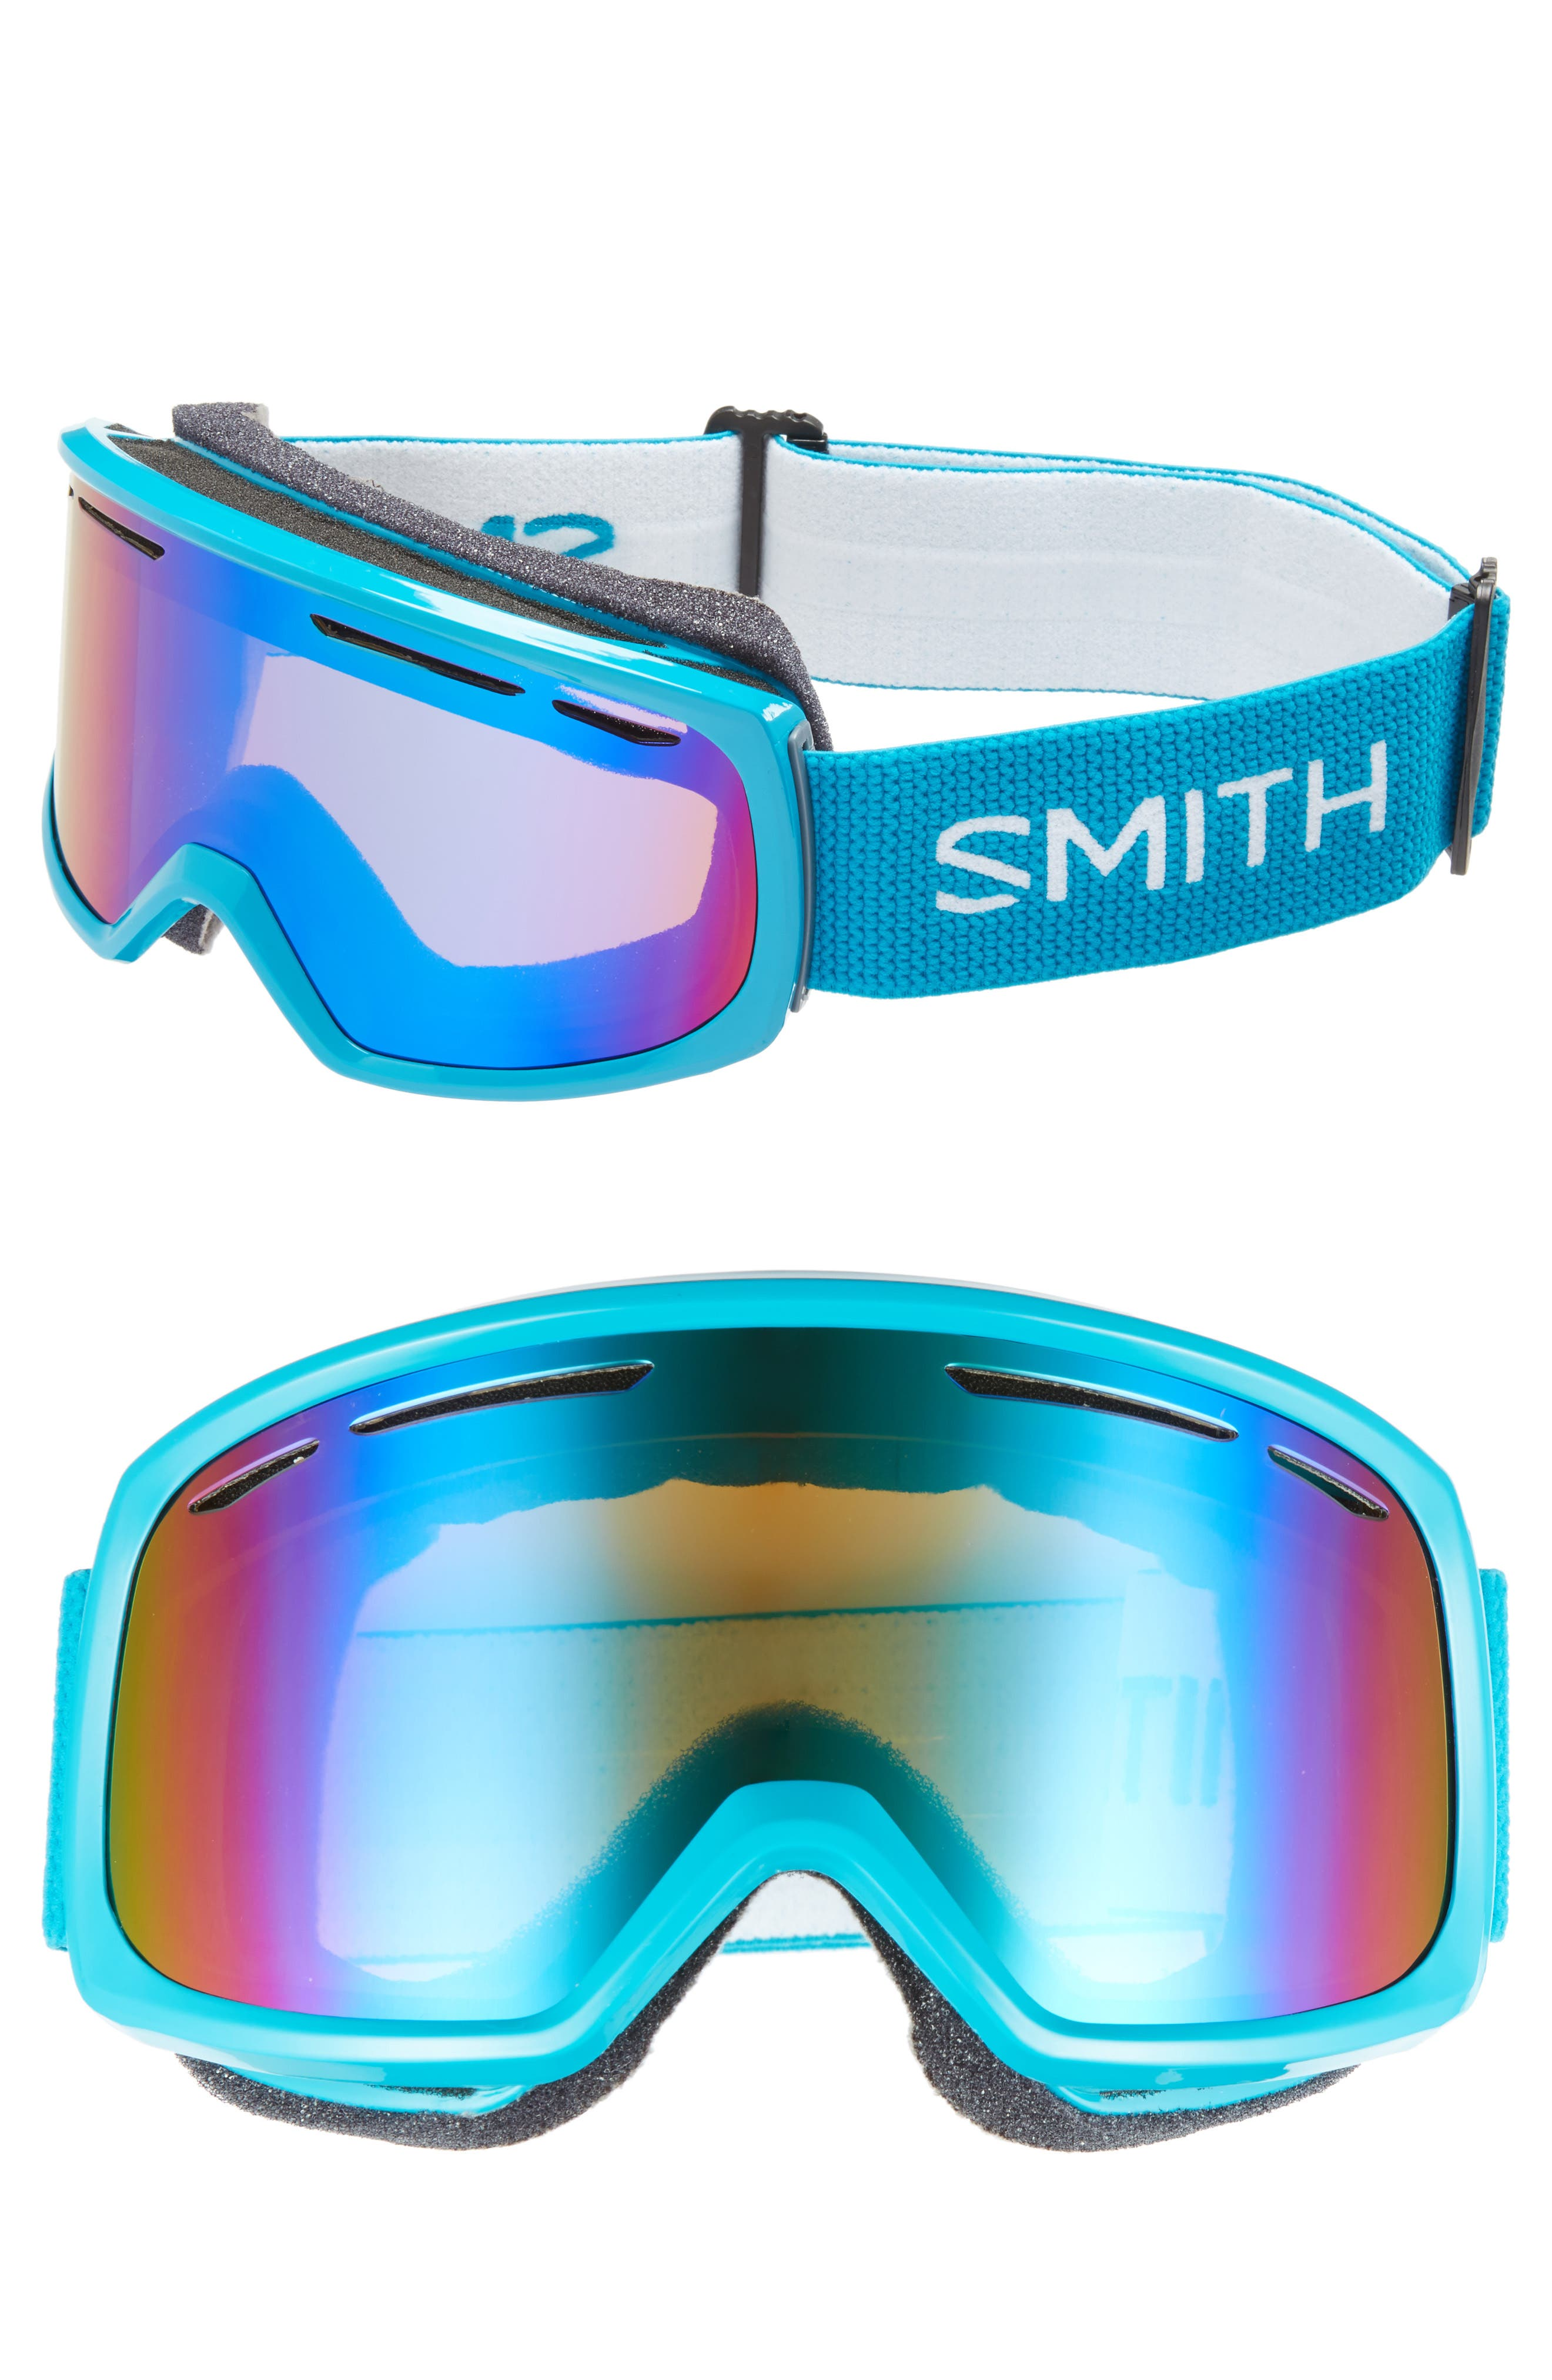 SMITH DRIFT SNOW GOGGLES - MINERAL/ MIRROR